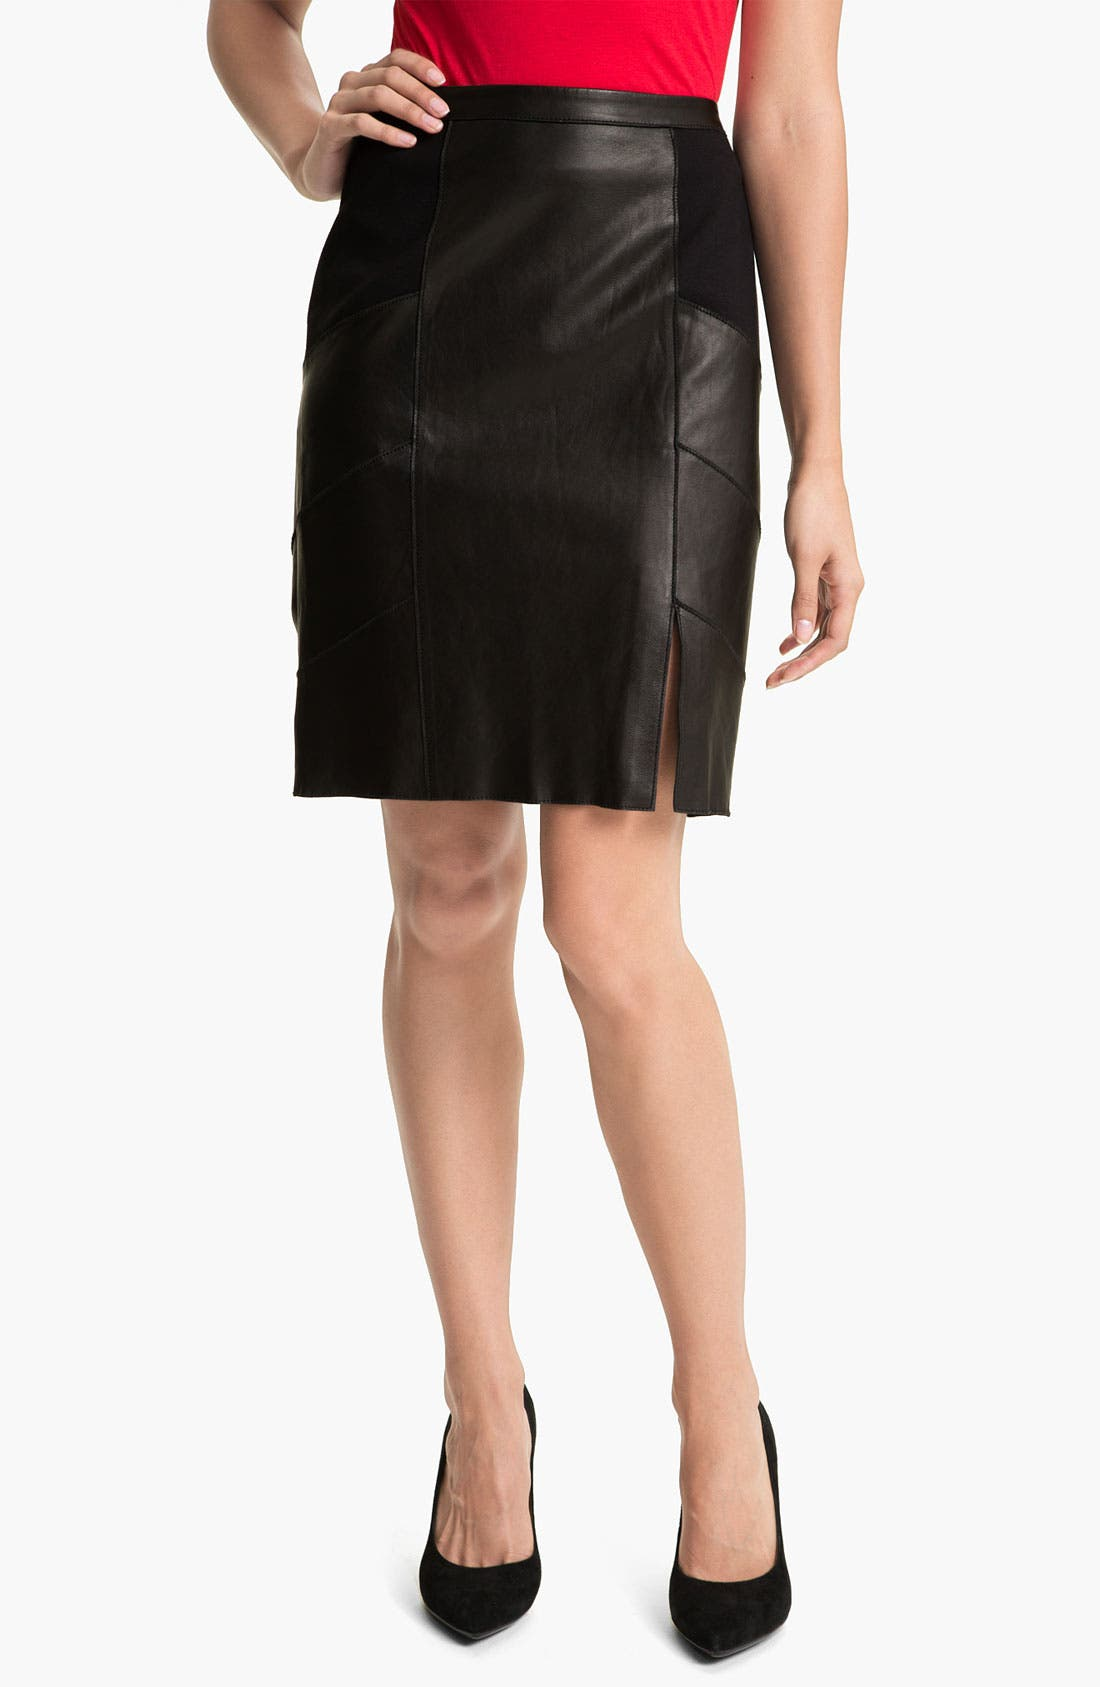 Alternate Image 1 Selected - Halogen® Leather & Ponte Pencil Skirt (Petite)